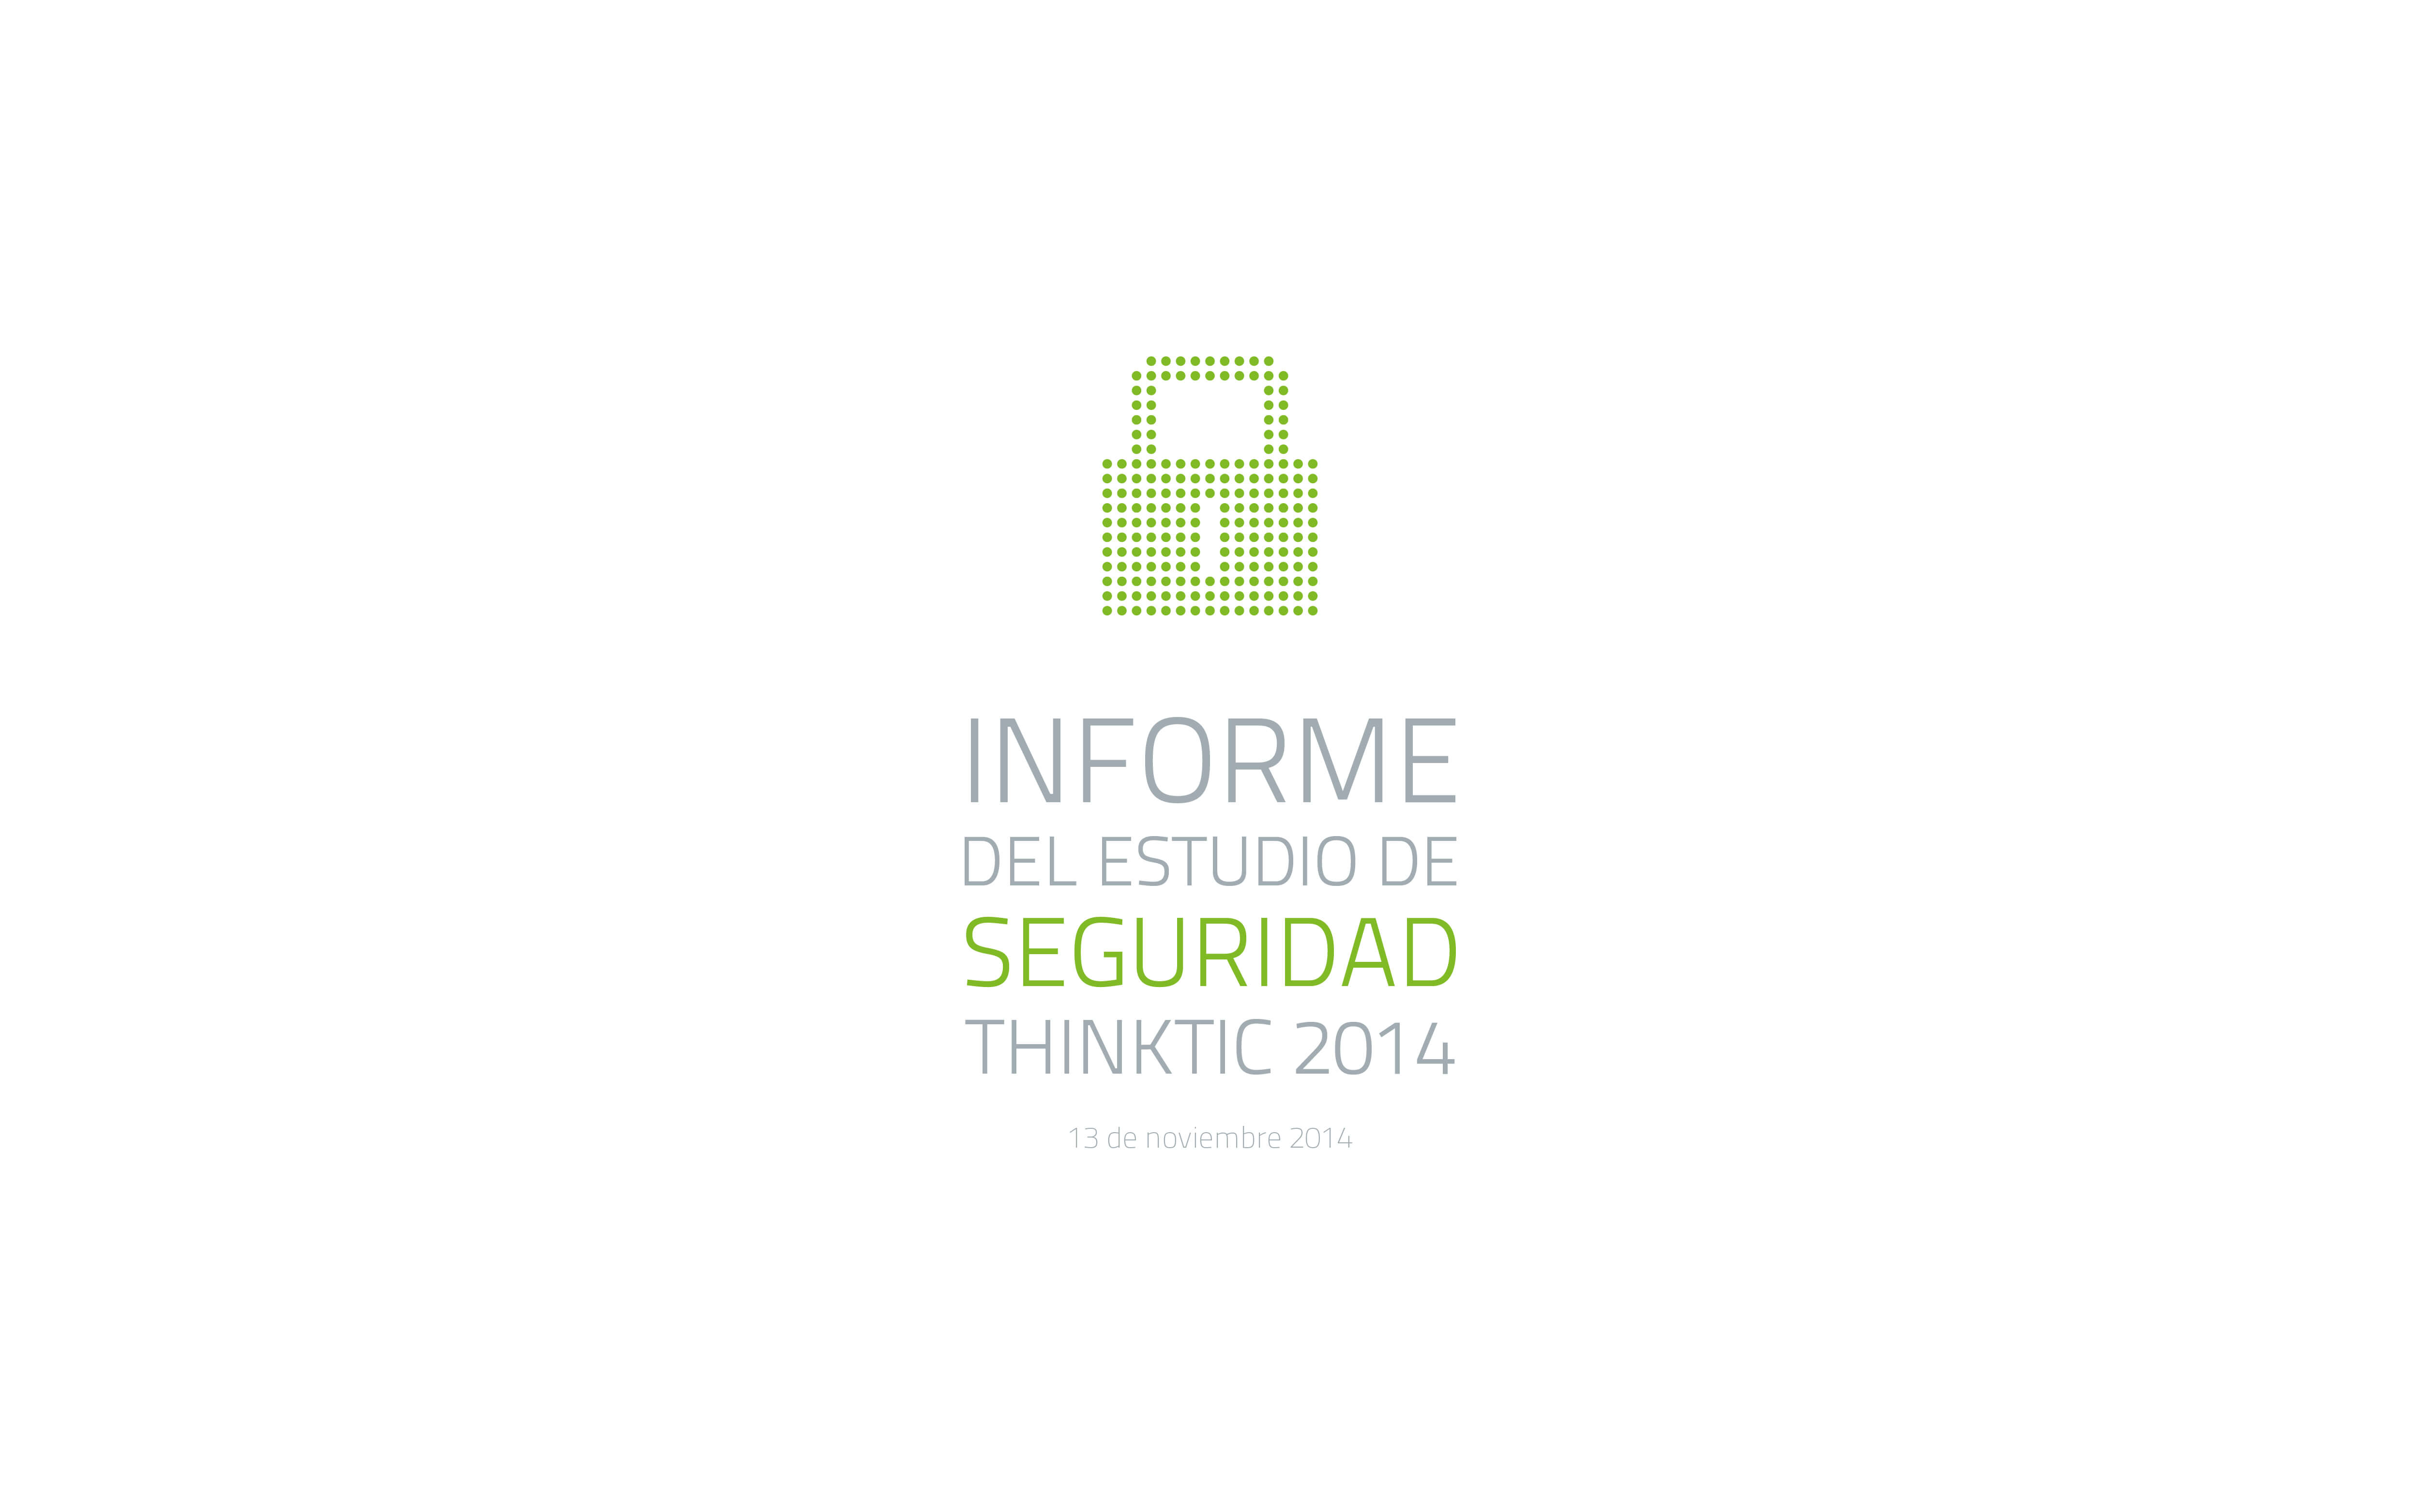 Informe del estudio de seguridad ThinkTIC 2014 logo